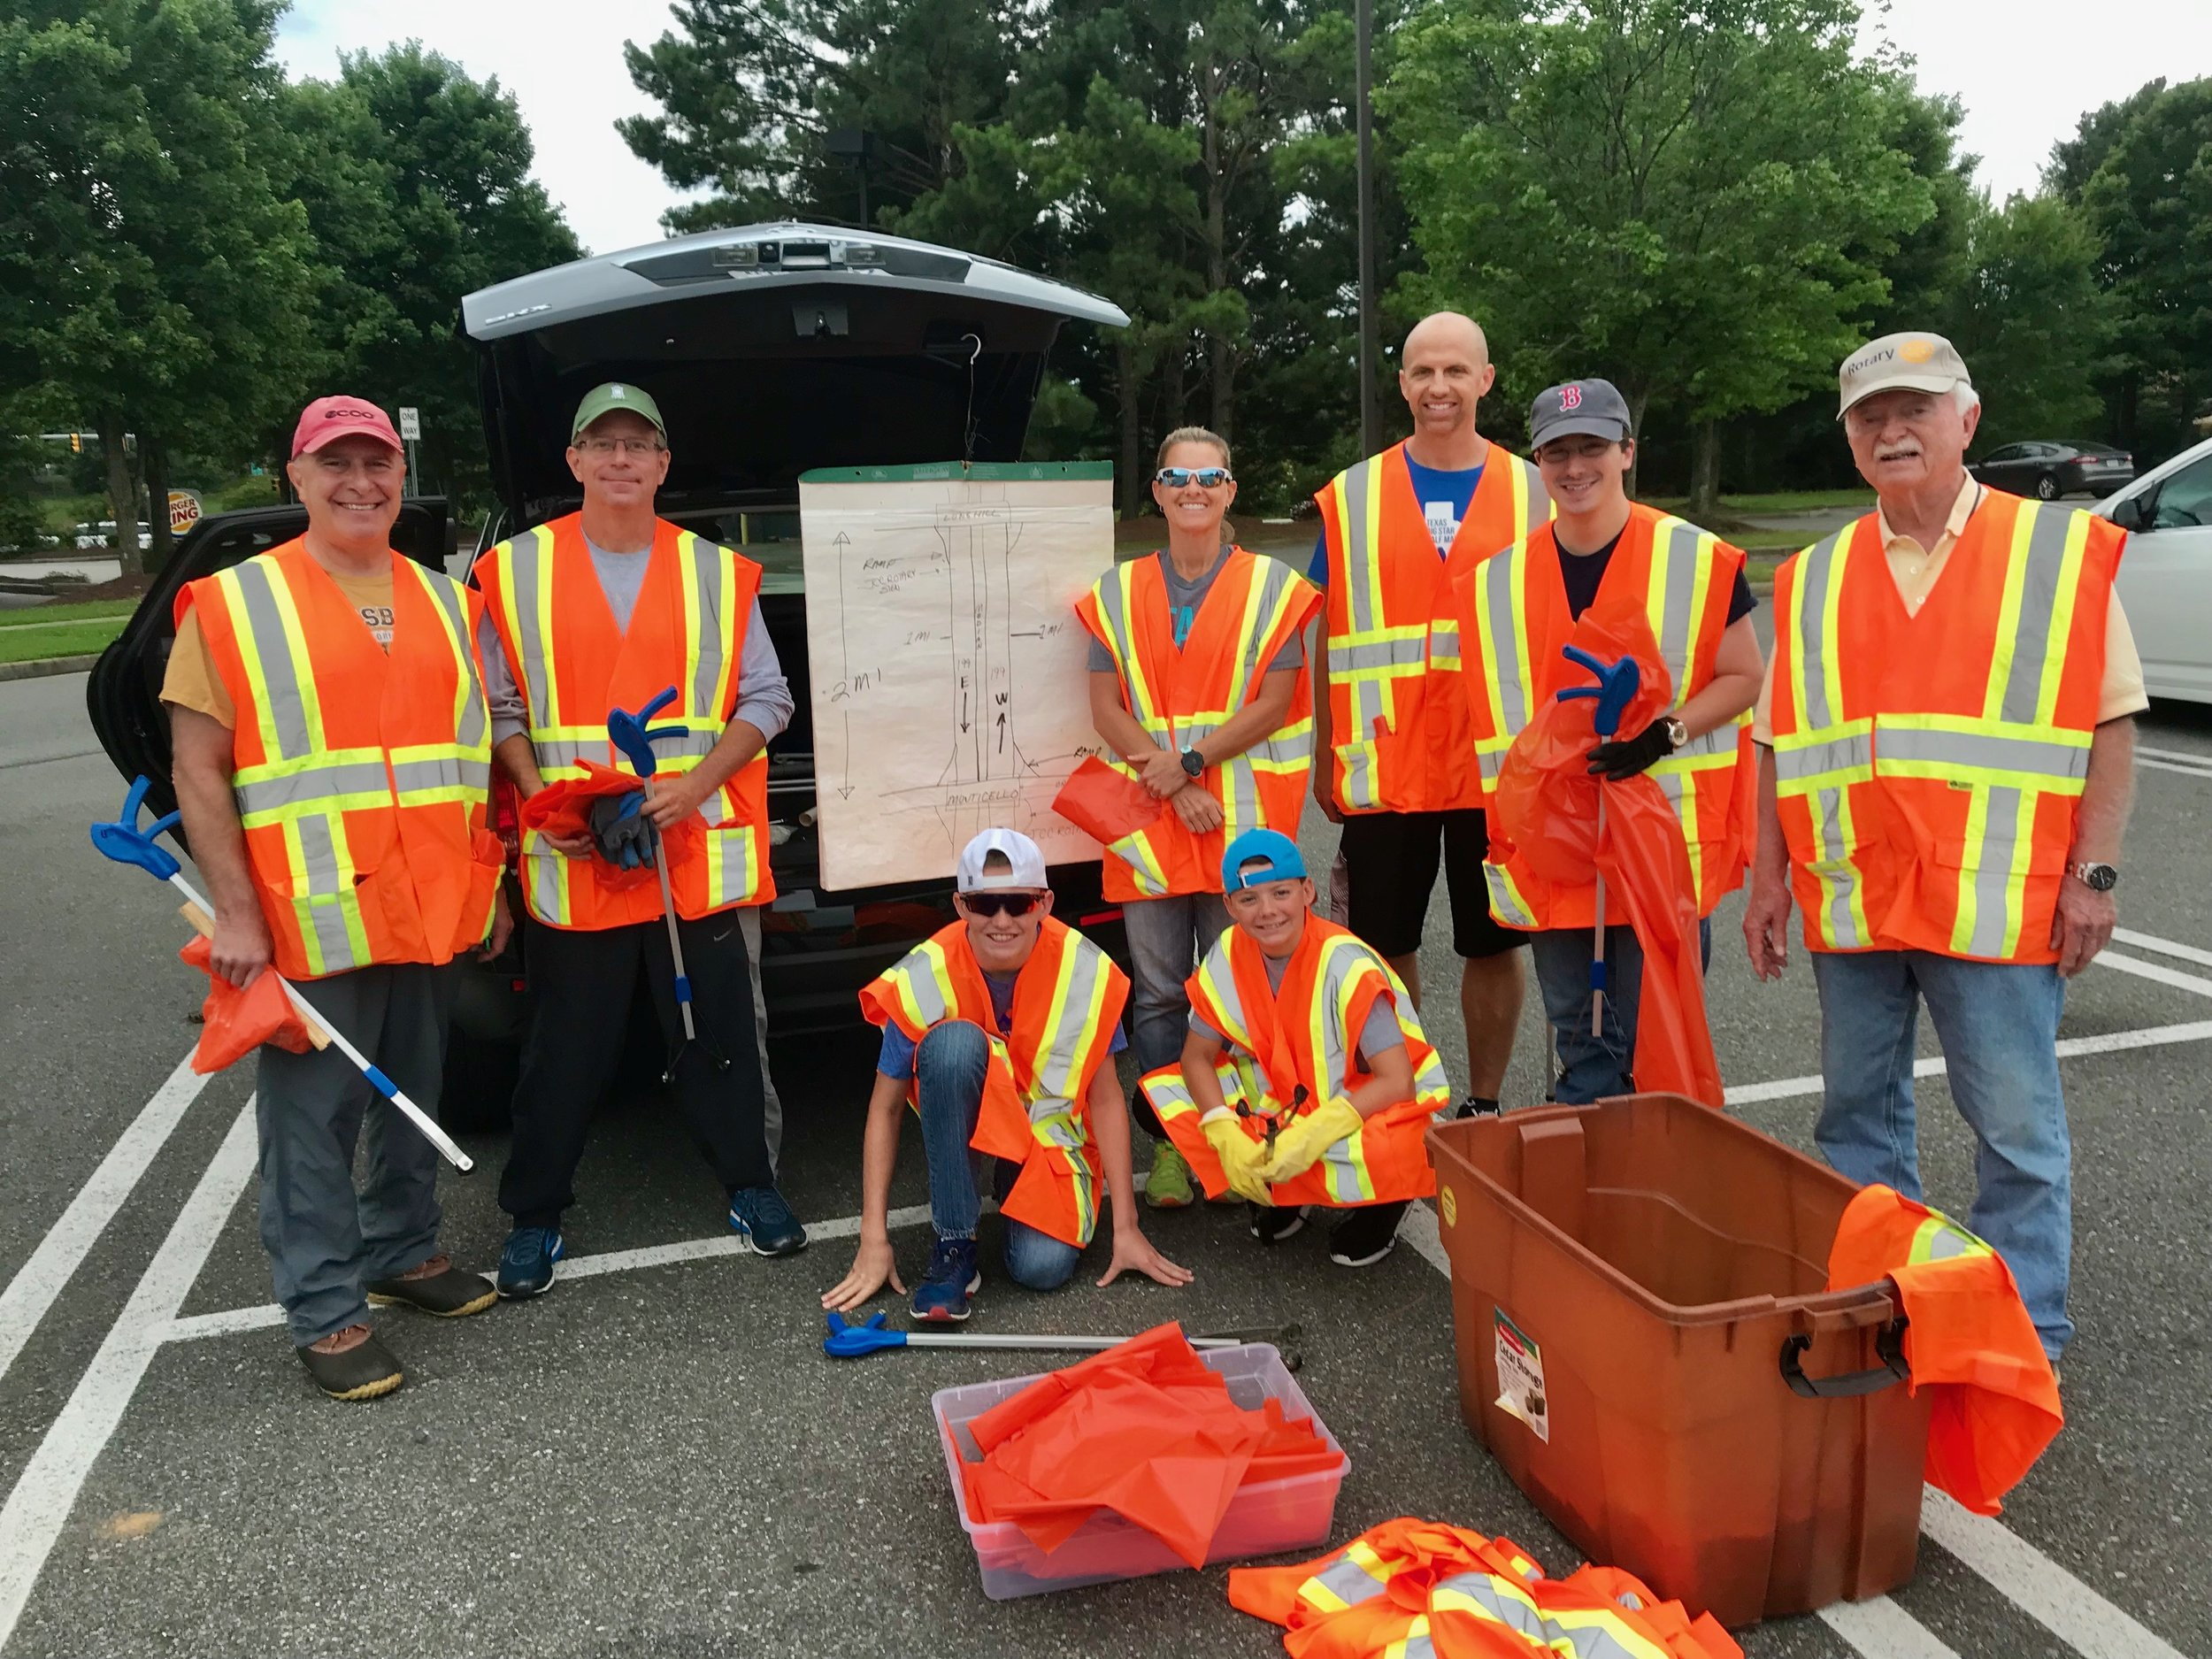 Gary Chenault led a group of Rotarians cleaning up Rt 199 in June. From left to right: Bob, Merritt, Eli (Gary's grandson), Suzy (Gary's daughter), Will (Gary's grandson), Bob (Gary's son-in-law), Grayson, and Gary.